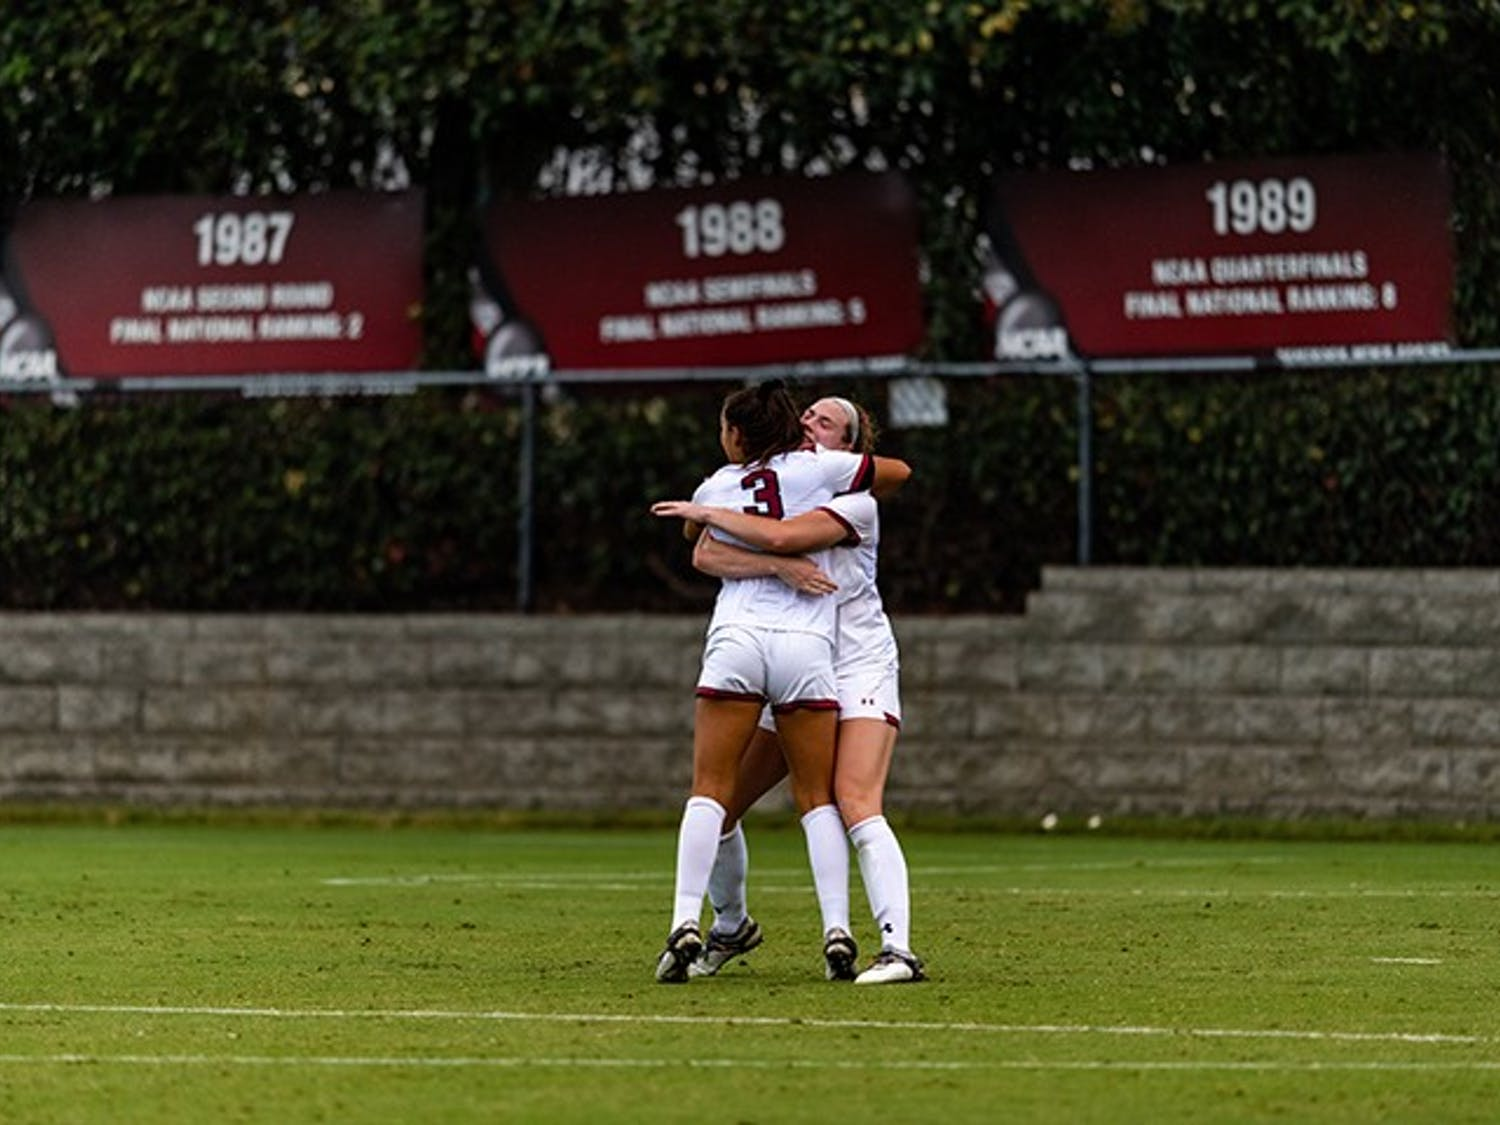 Members of the women's soccer team celebrate after a goal in an earlier 2020 season game against Missouri. The Gamecocks beat the Tigers Tuesday night to advance to the SEC Tournament semifinals.